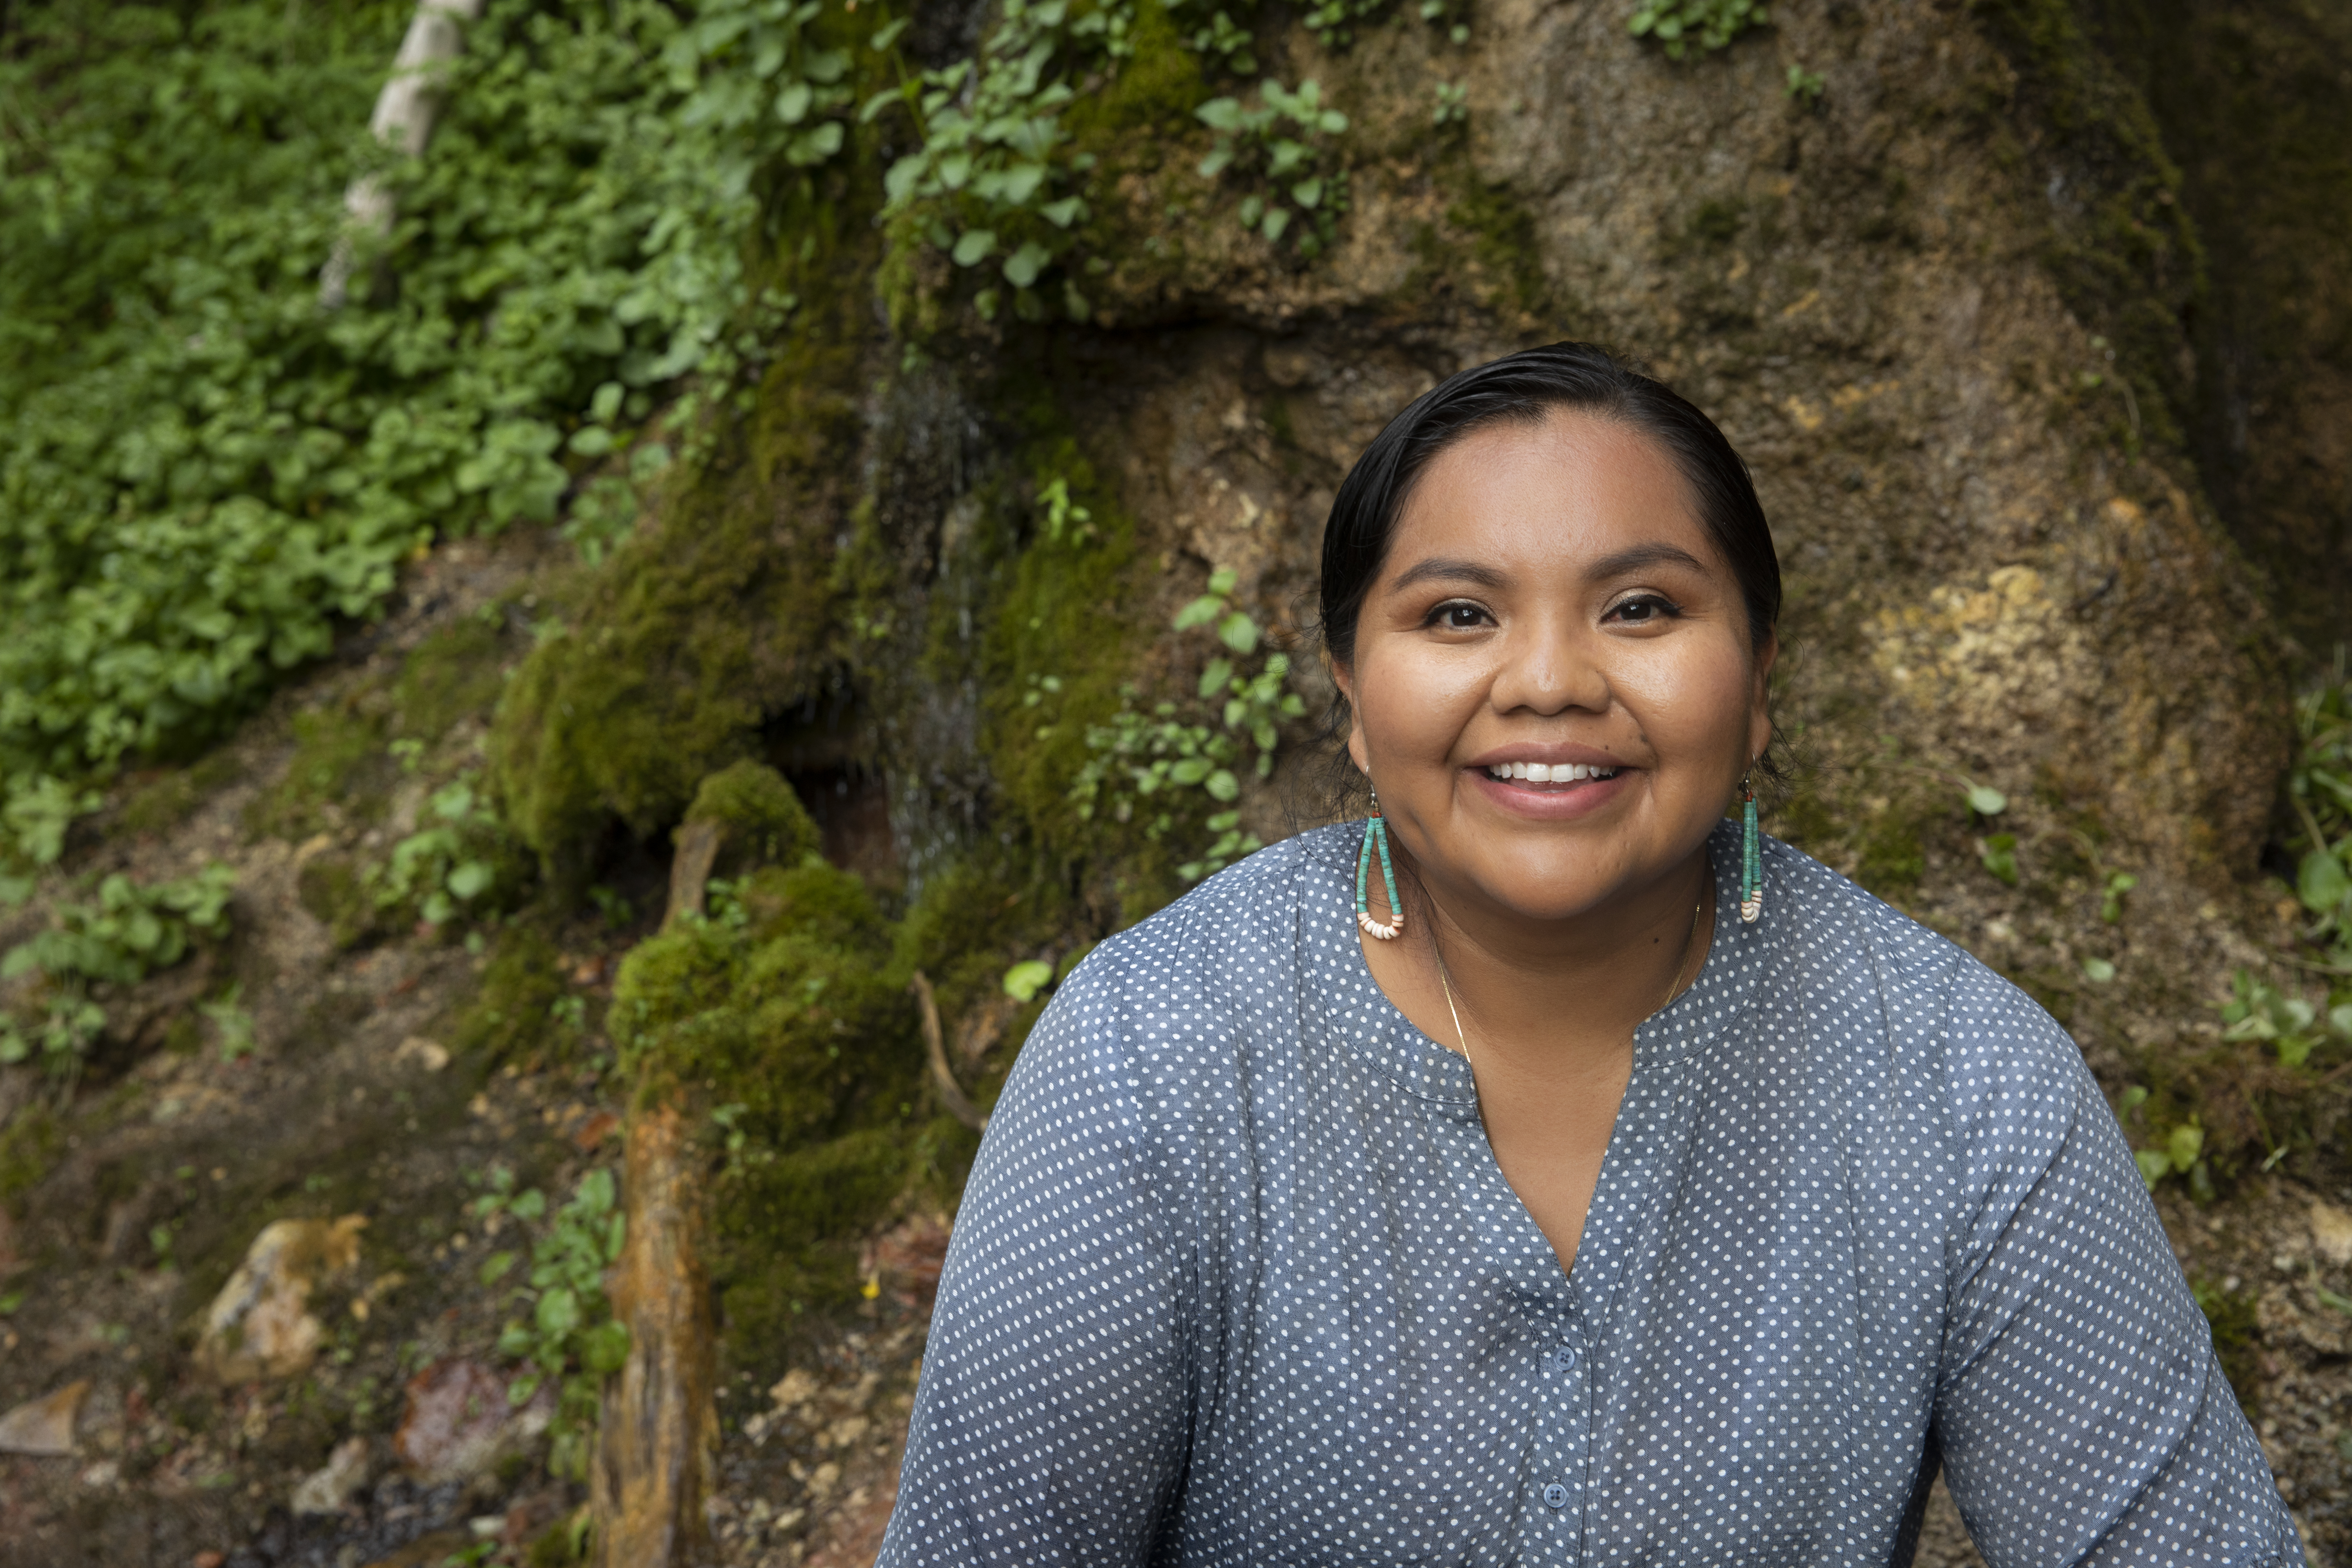 Nikki Tulley is an environmental science doctoral student